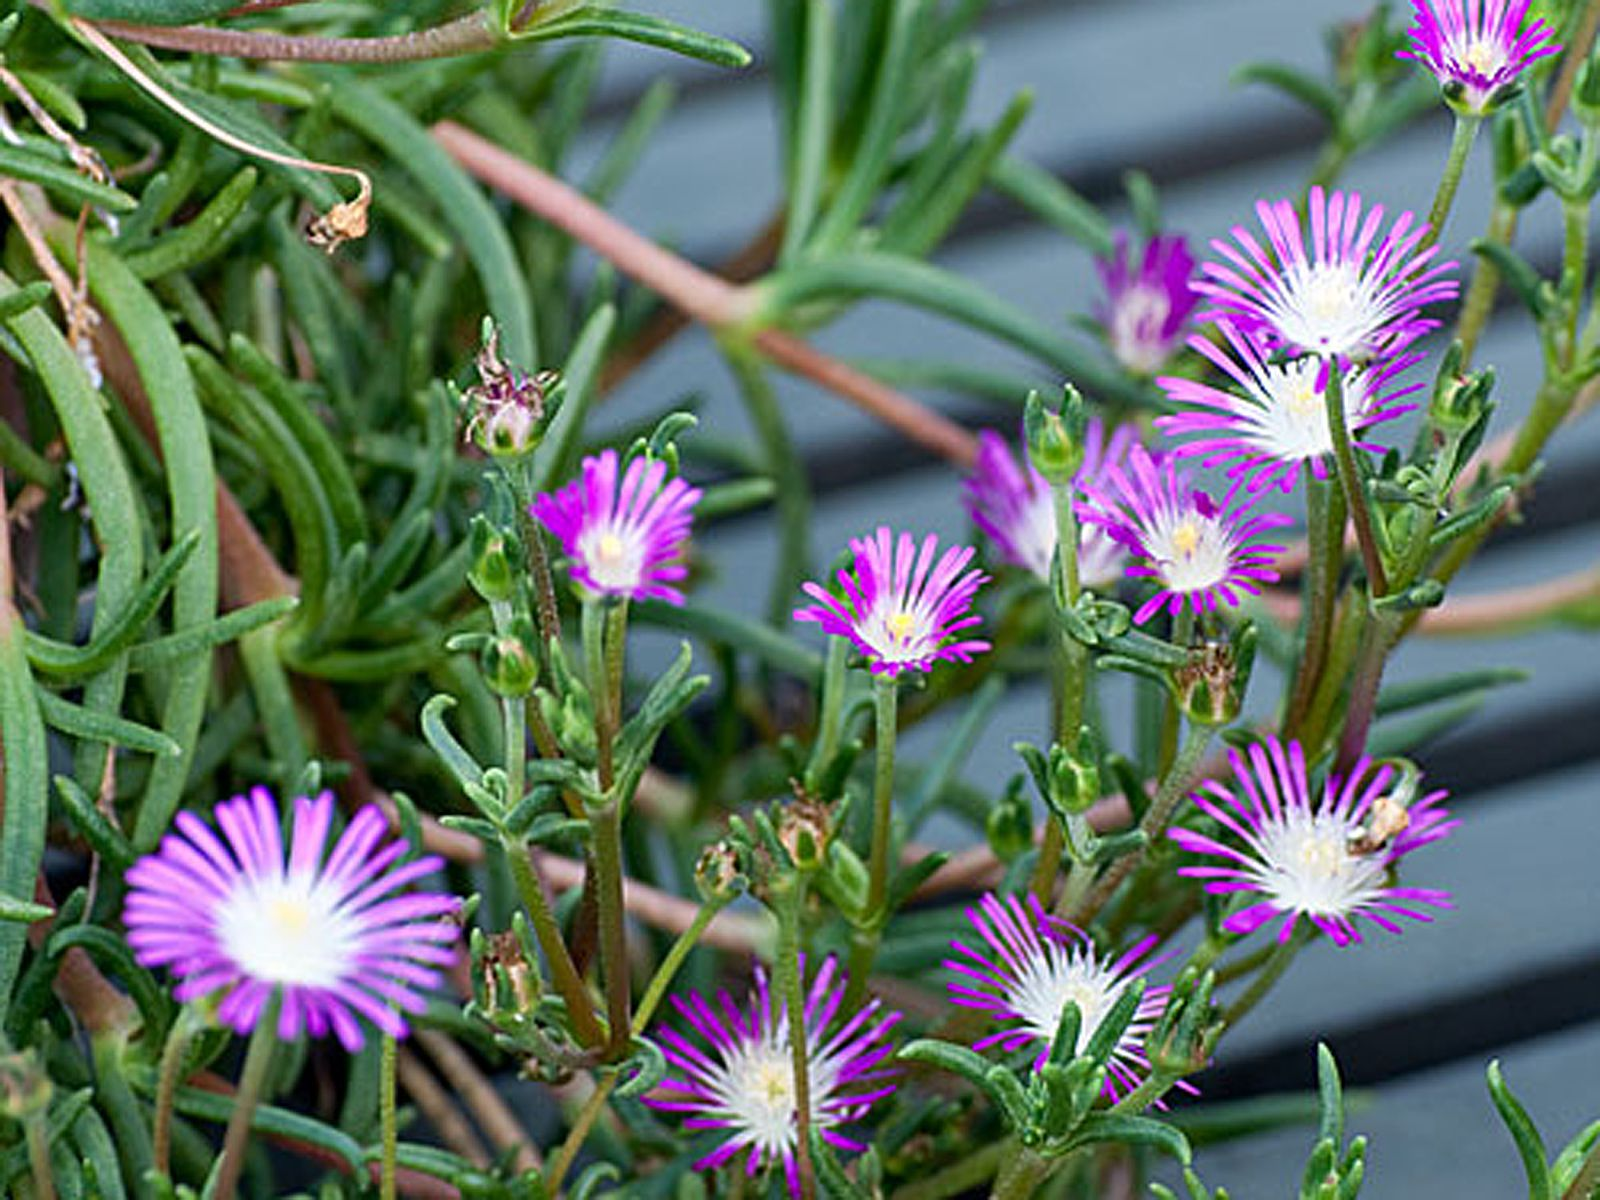 String of bananas plant - How To Grow And Care For Unusual Ice Plants